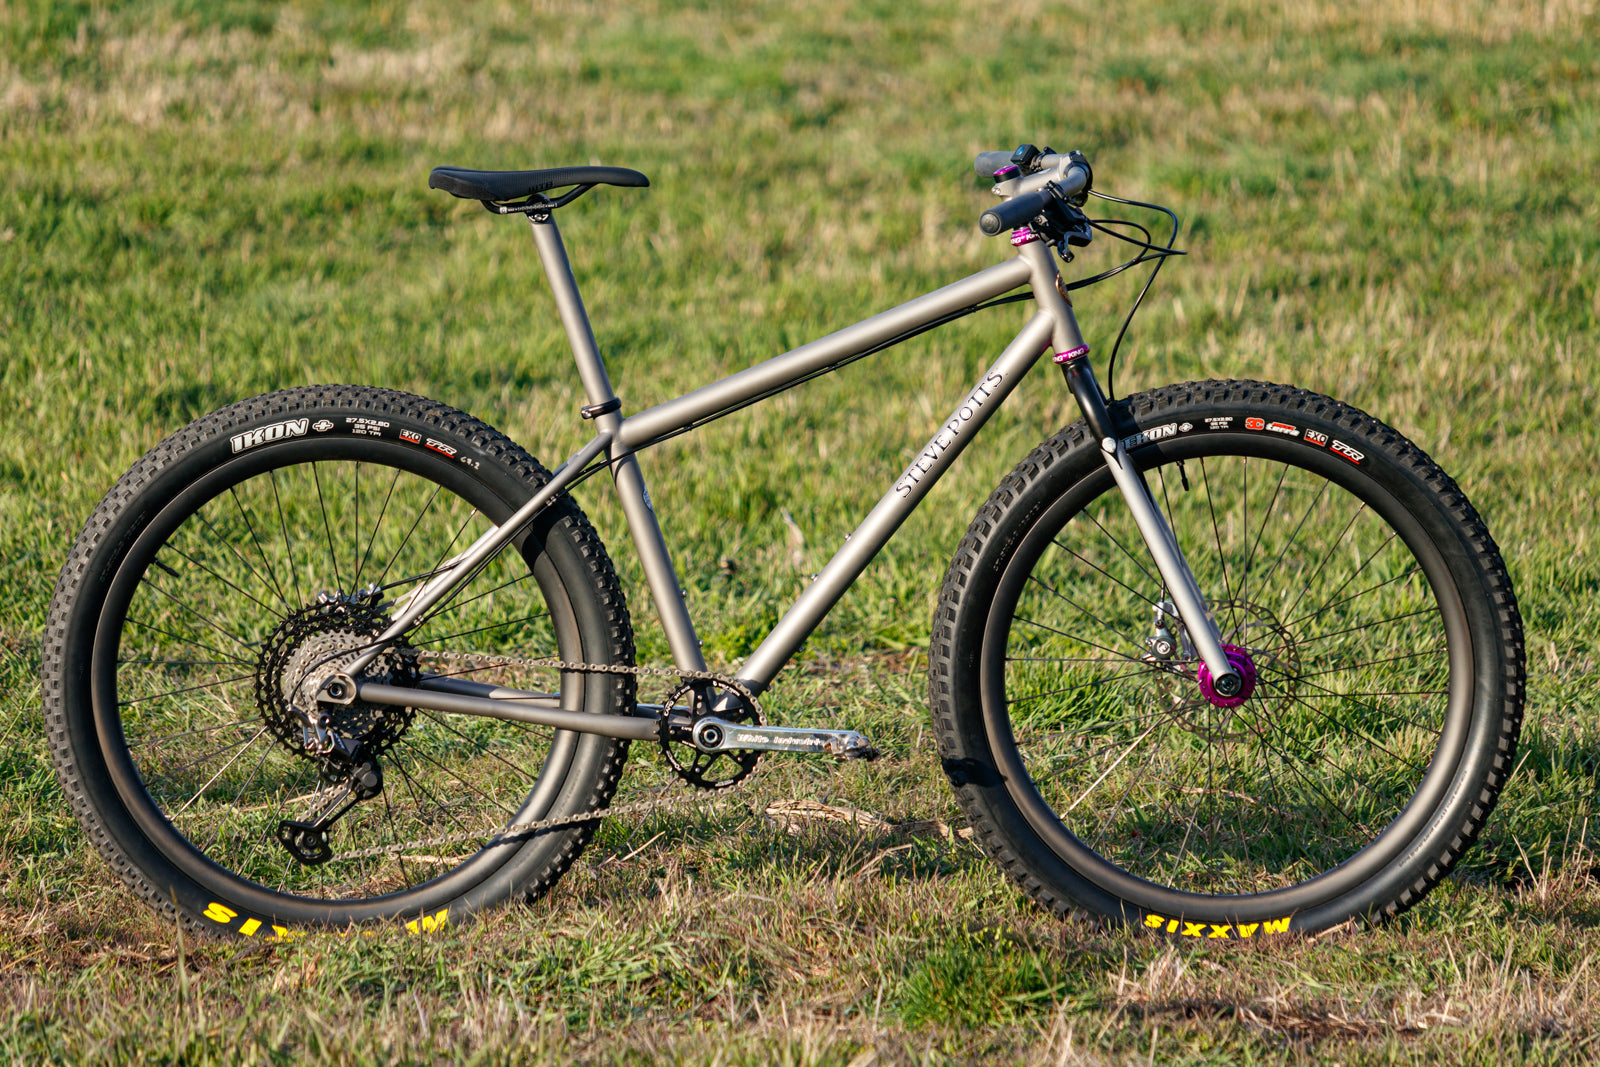 Bling Build: Jordan's Steve Potts Hardtail